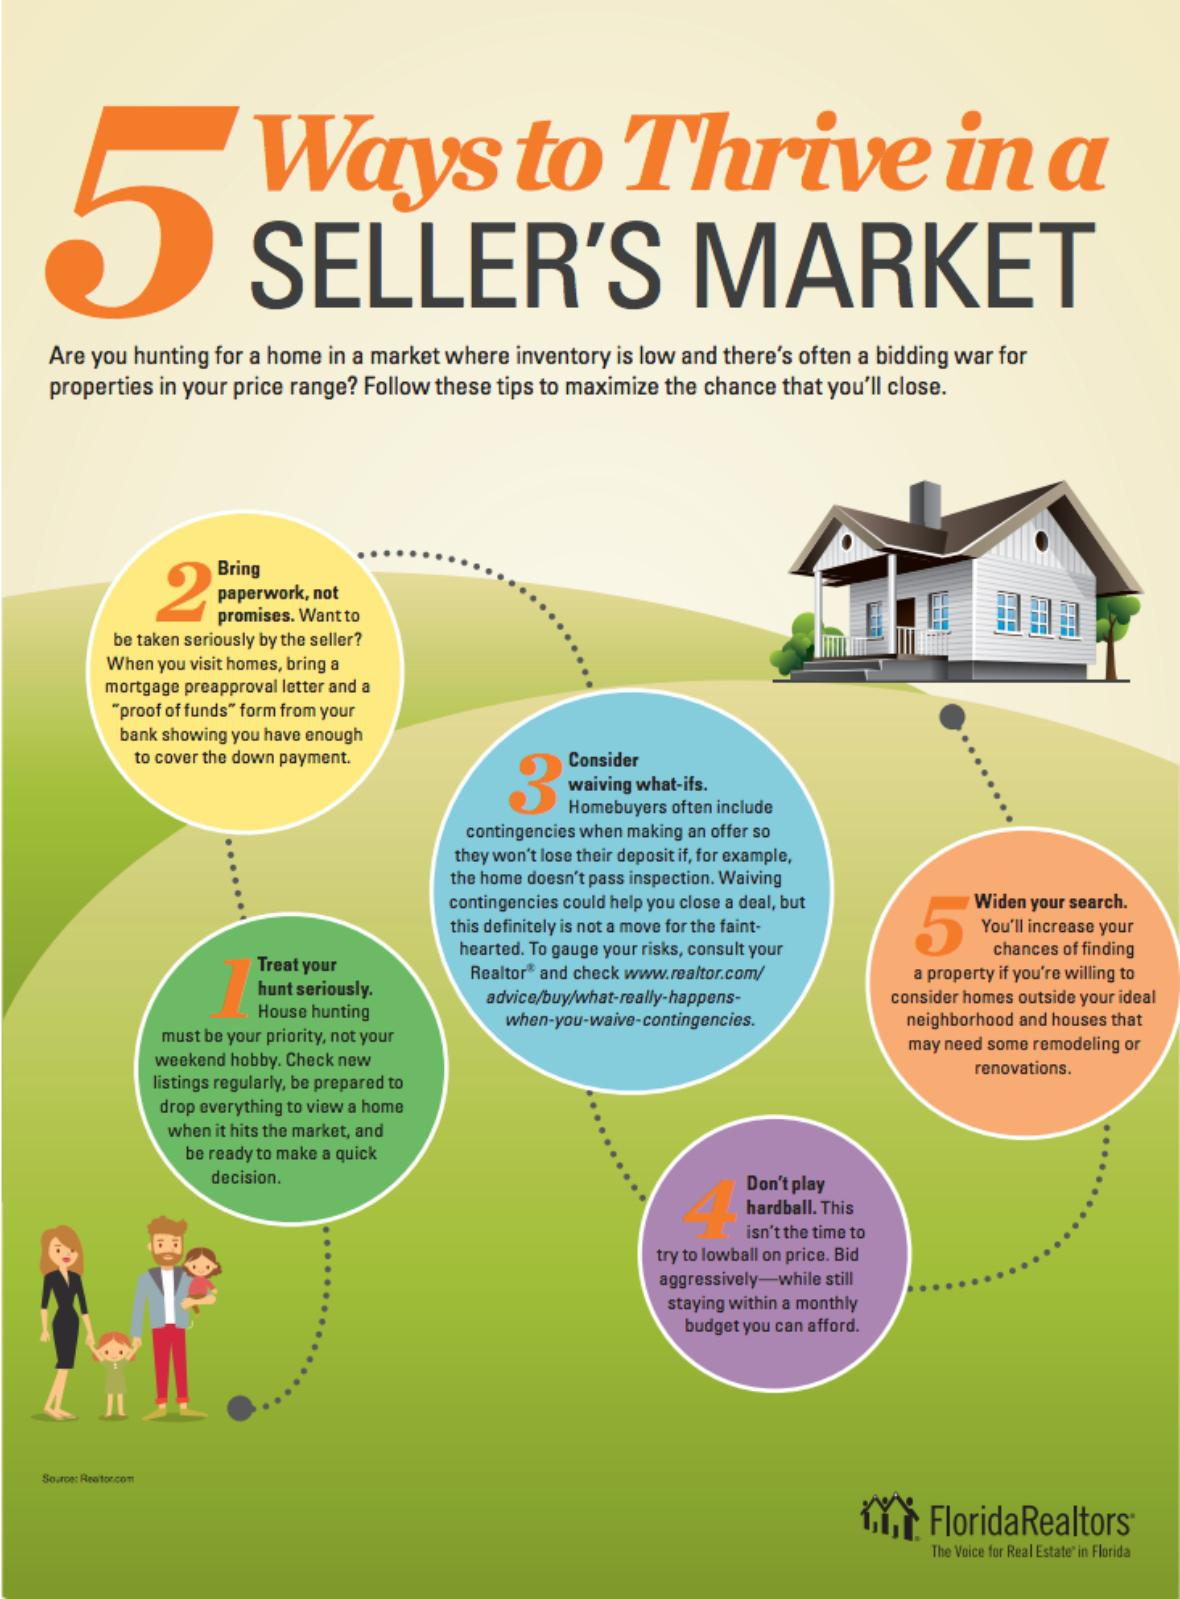 thrive in a seller's market